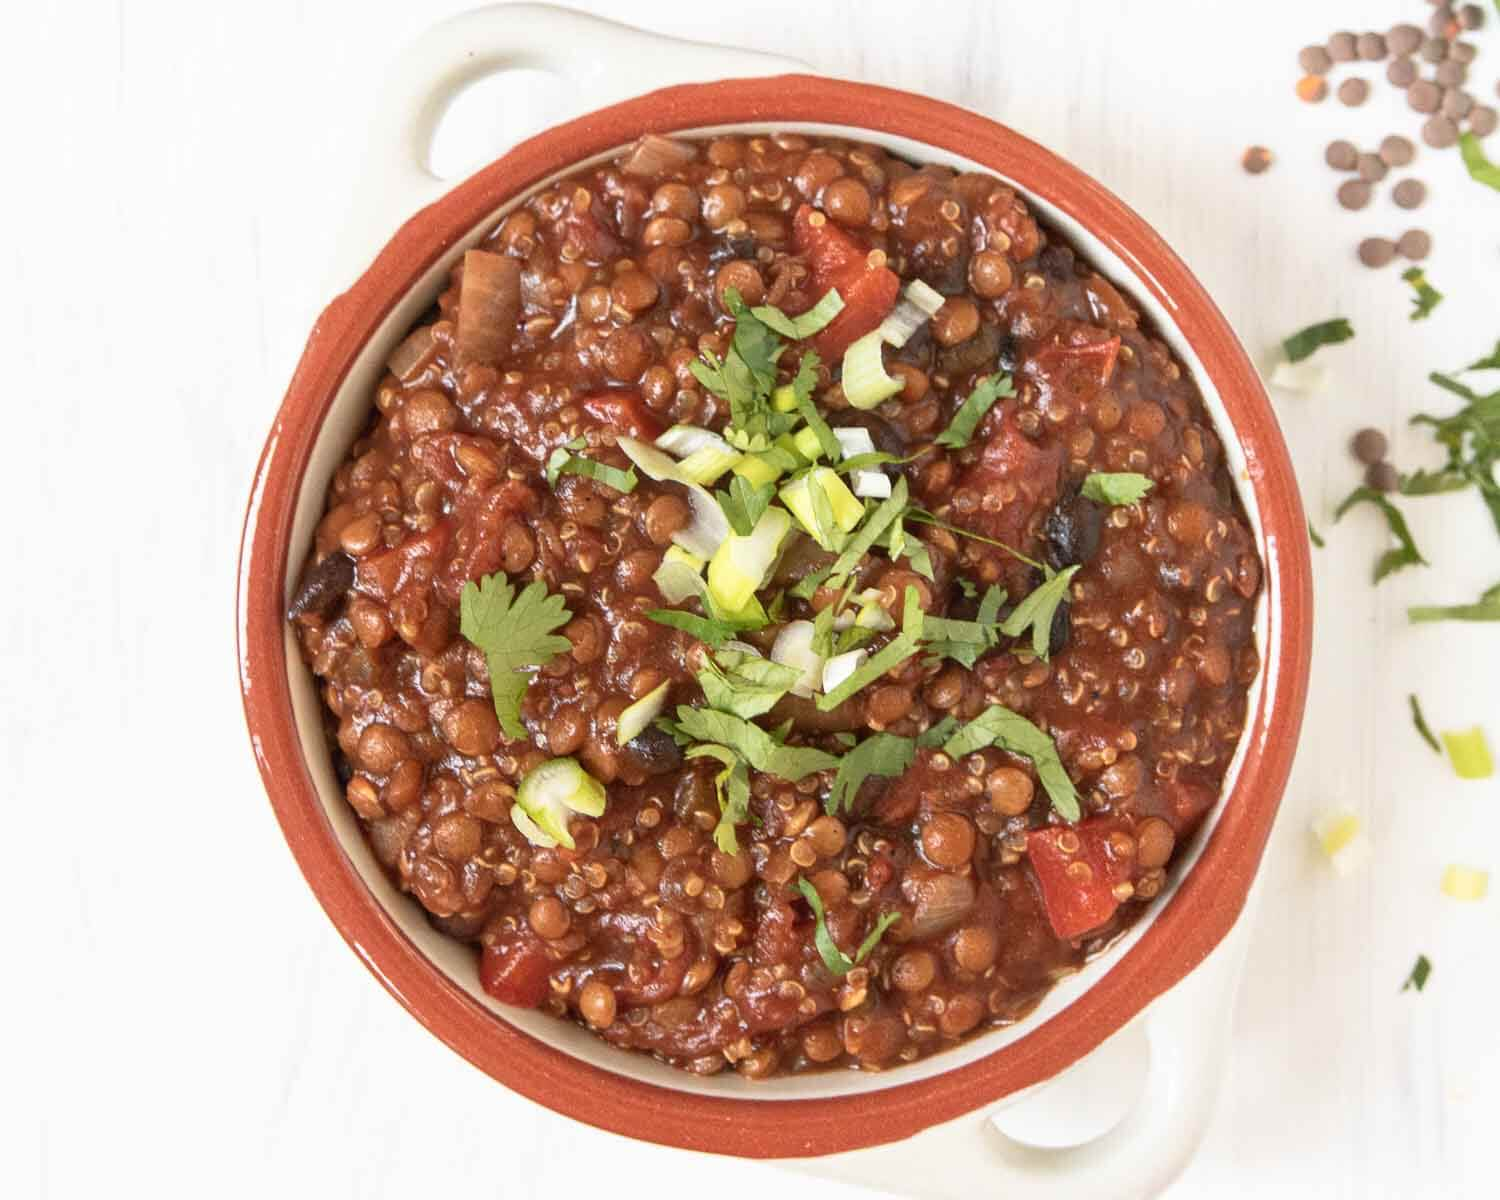 lentil and black bean chili with quinoa